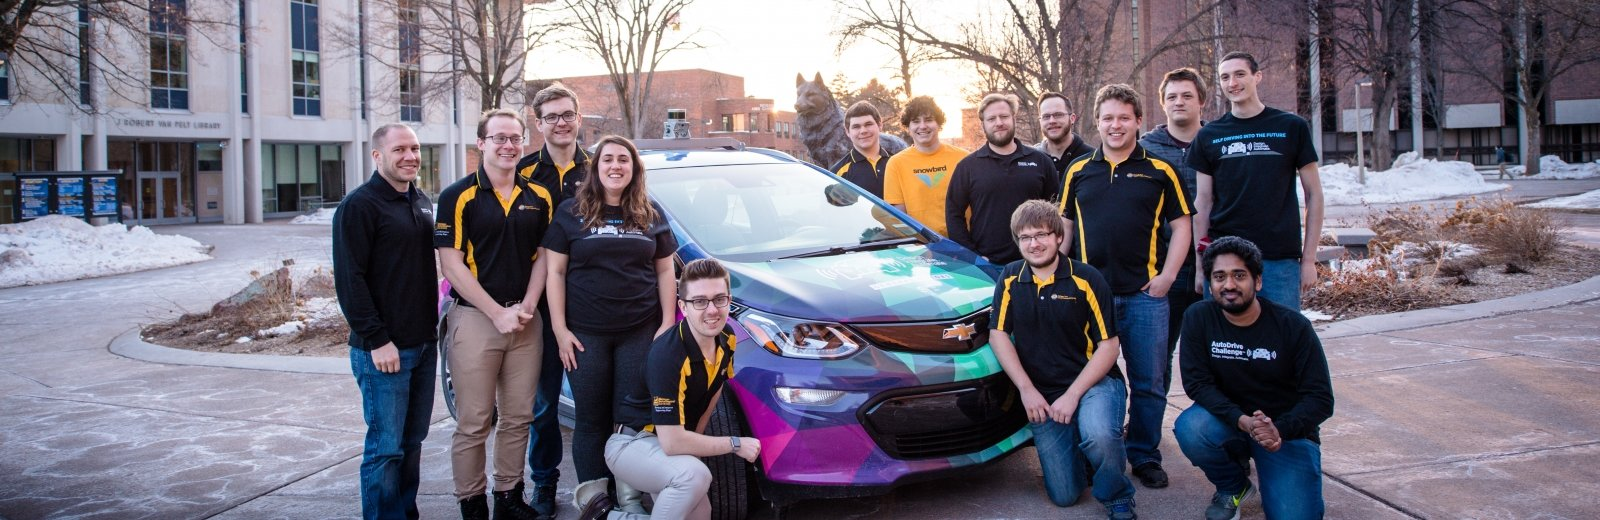 Prometheus Borealis team standing around the car on campus.